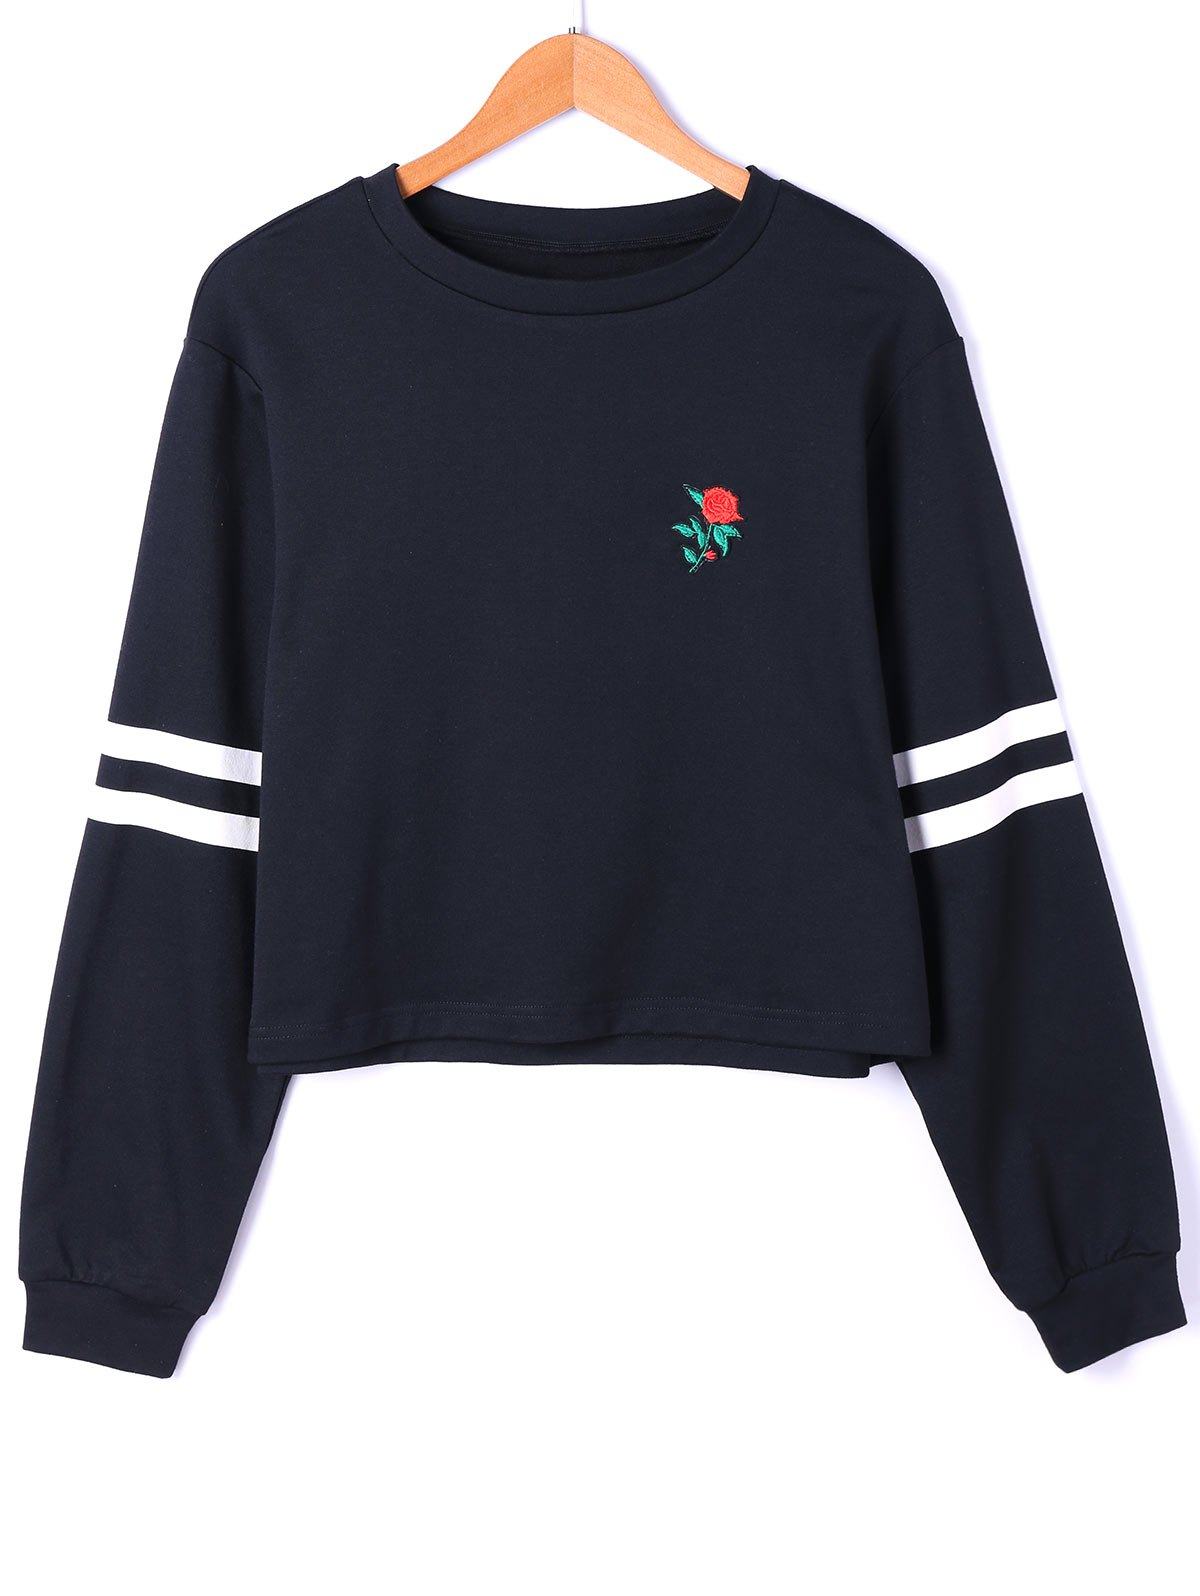 Drop Shoulder Stripes Floral Embroidered Pullover Sweatshirt - WHITE/BLACK XL